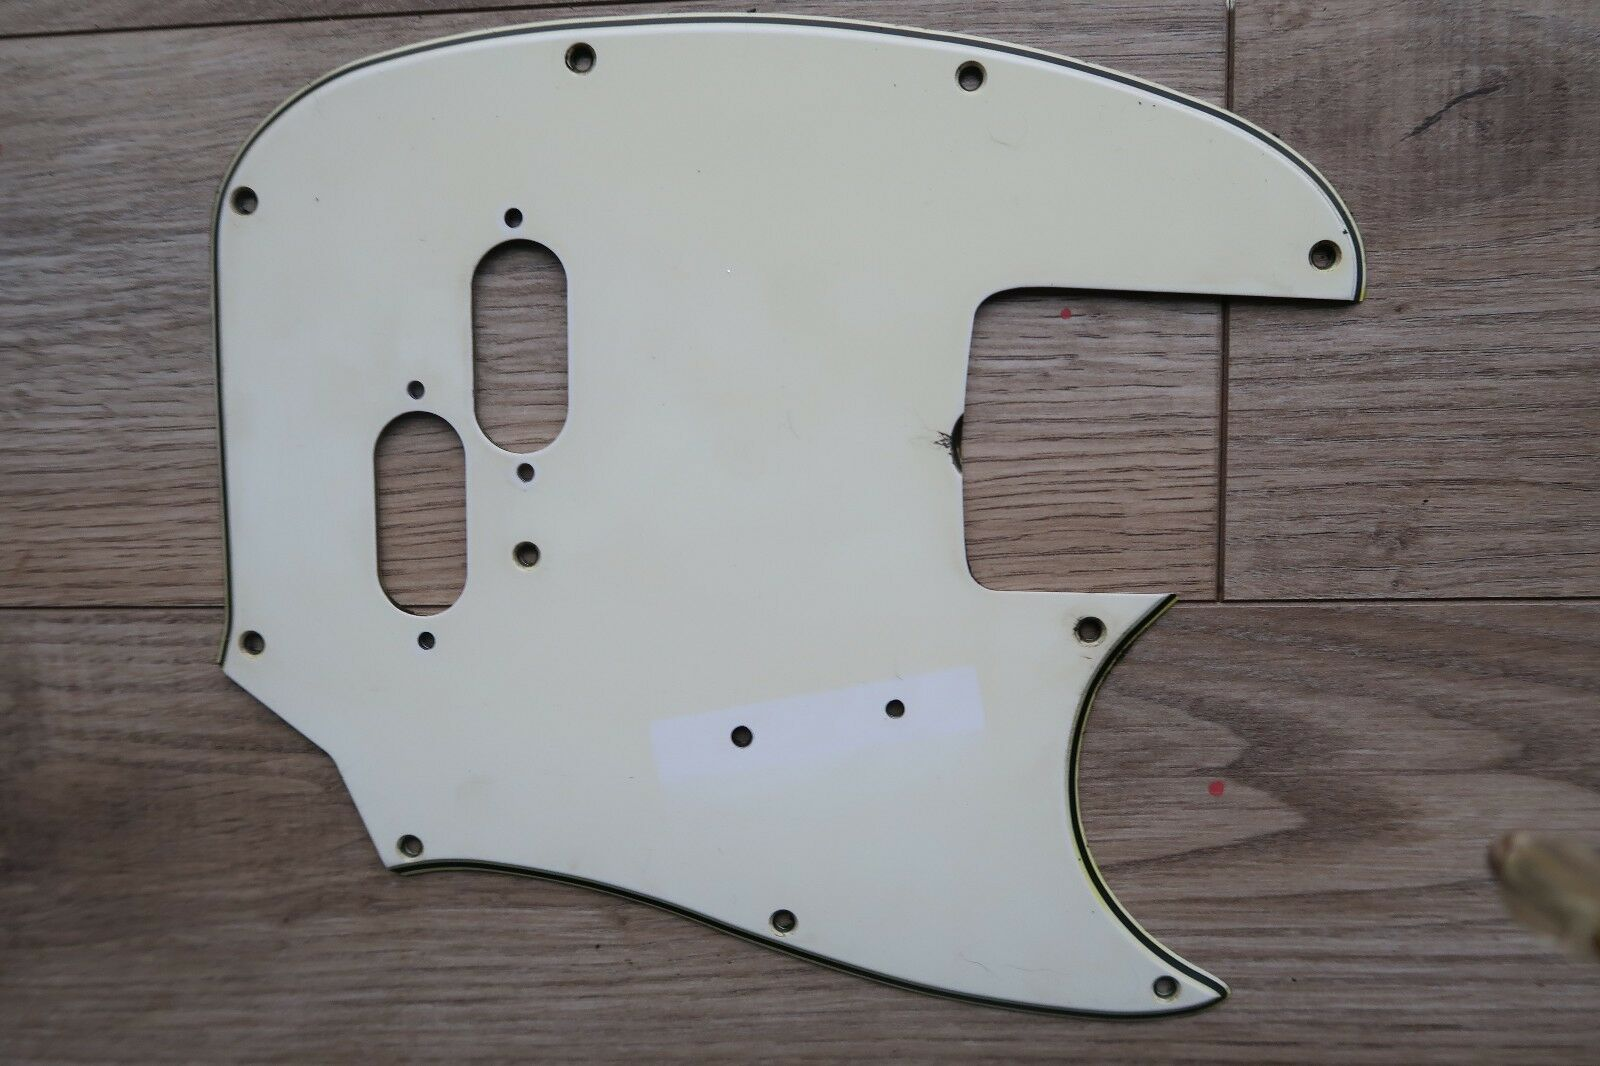 '66 '71 Fender Mustang bass  pickguard 67 68 69 70 3 ply Weiß vintage relic USA